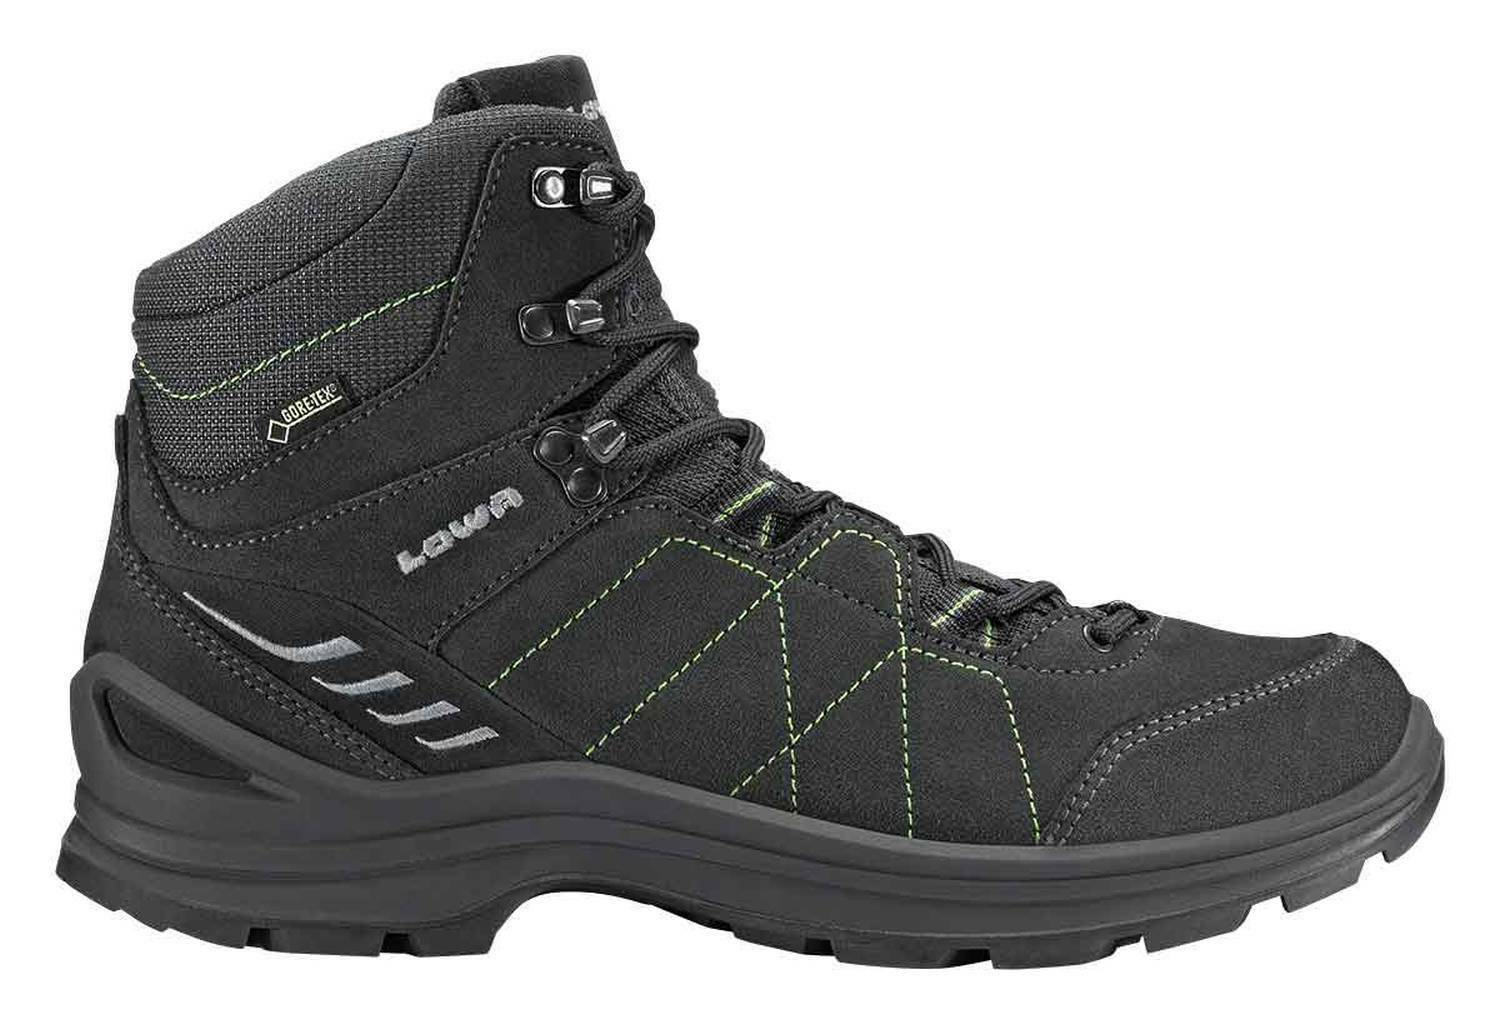 Lowa Men's Trekking shoes  Tiago GTX mid all Terrain Anthracite Lime  support wholesale retail